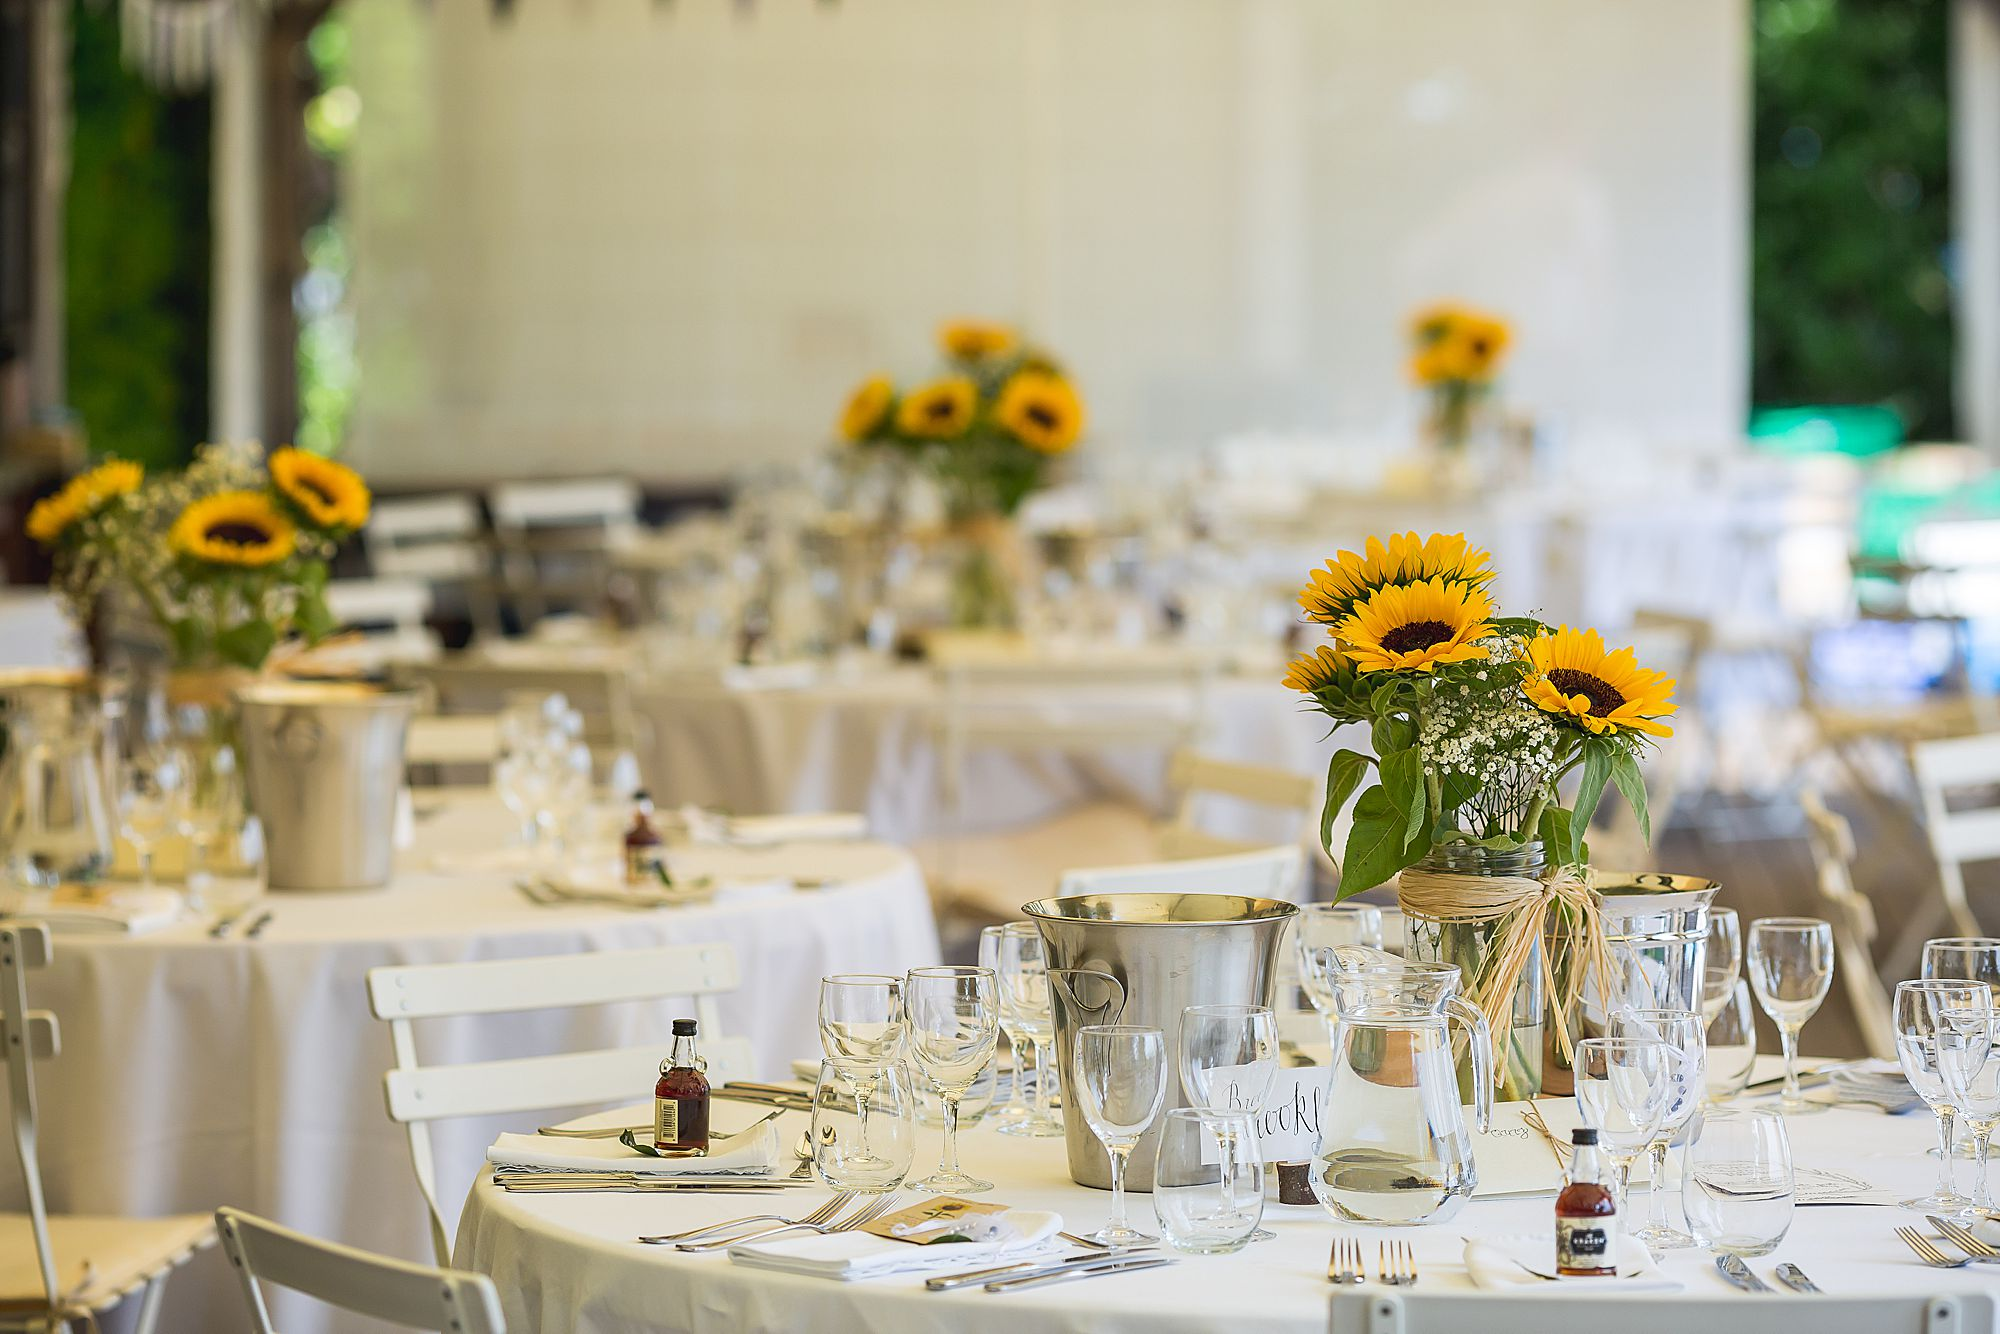 sunflowers at wedding